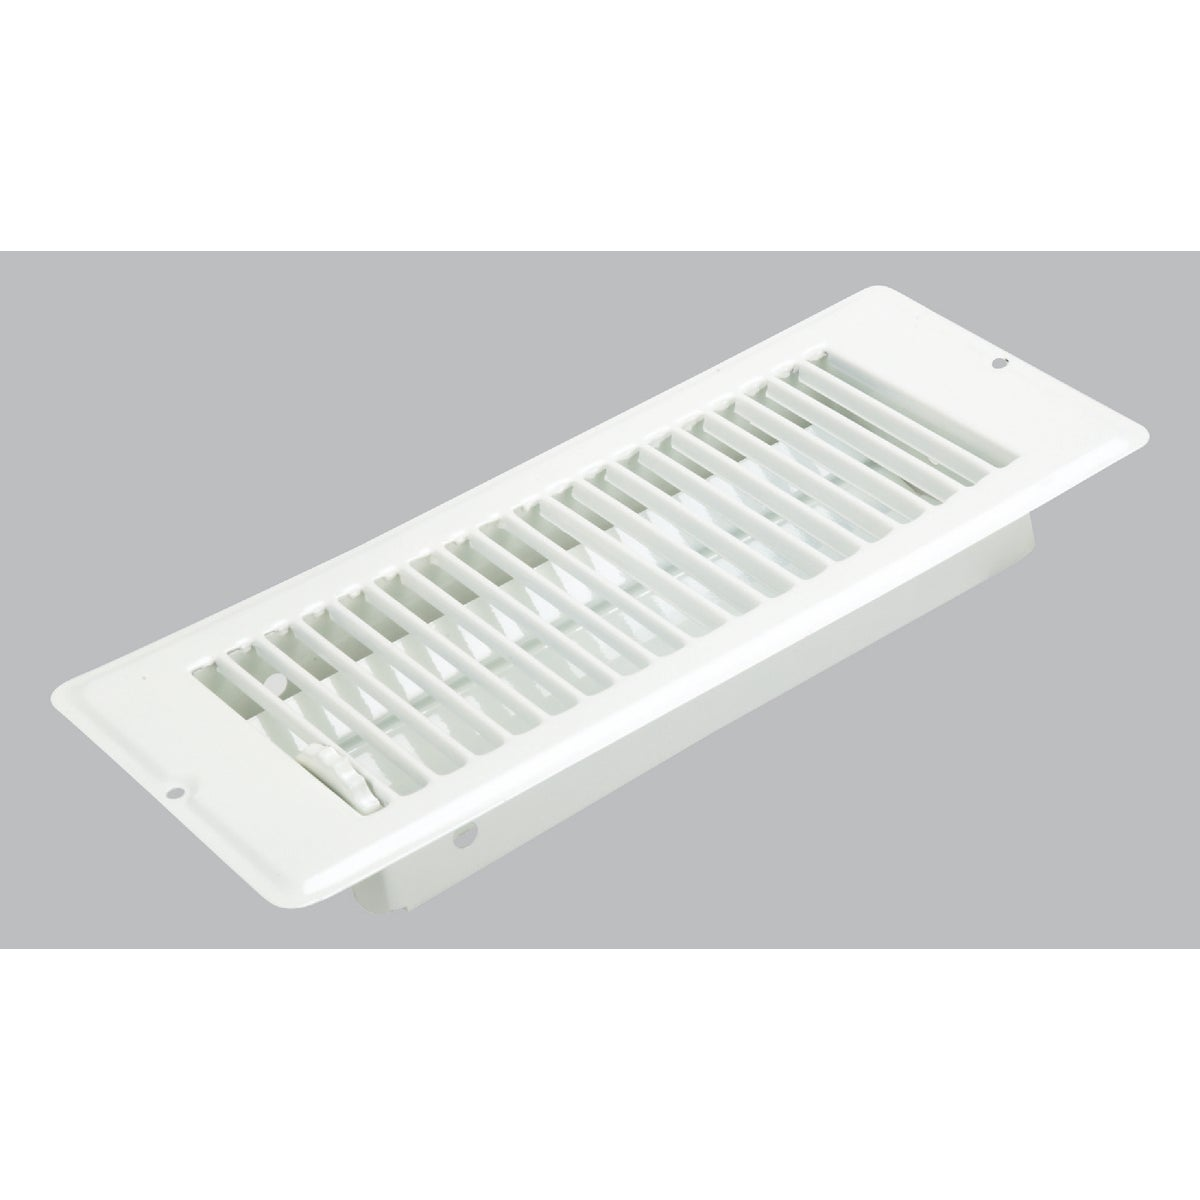 4X10 WHT FLOOR REGISTER - V-057IWB by U S Hardware